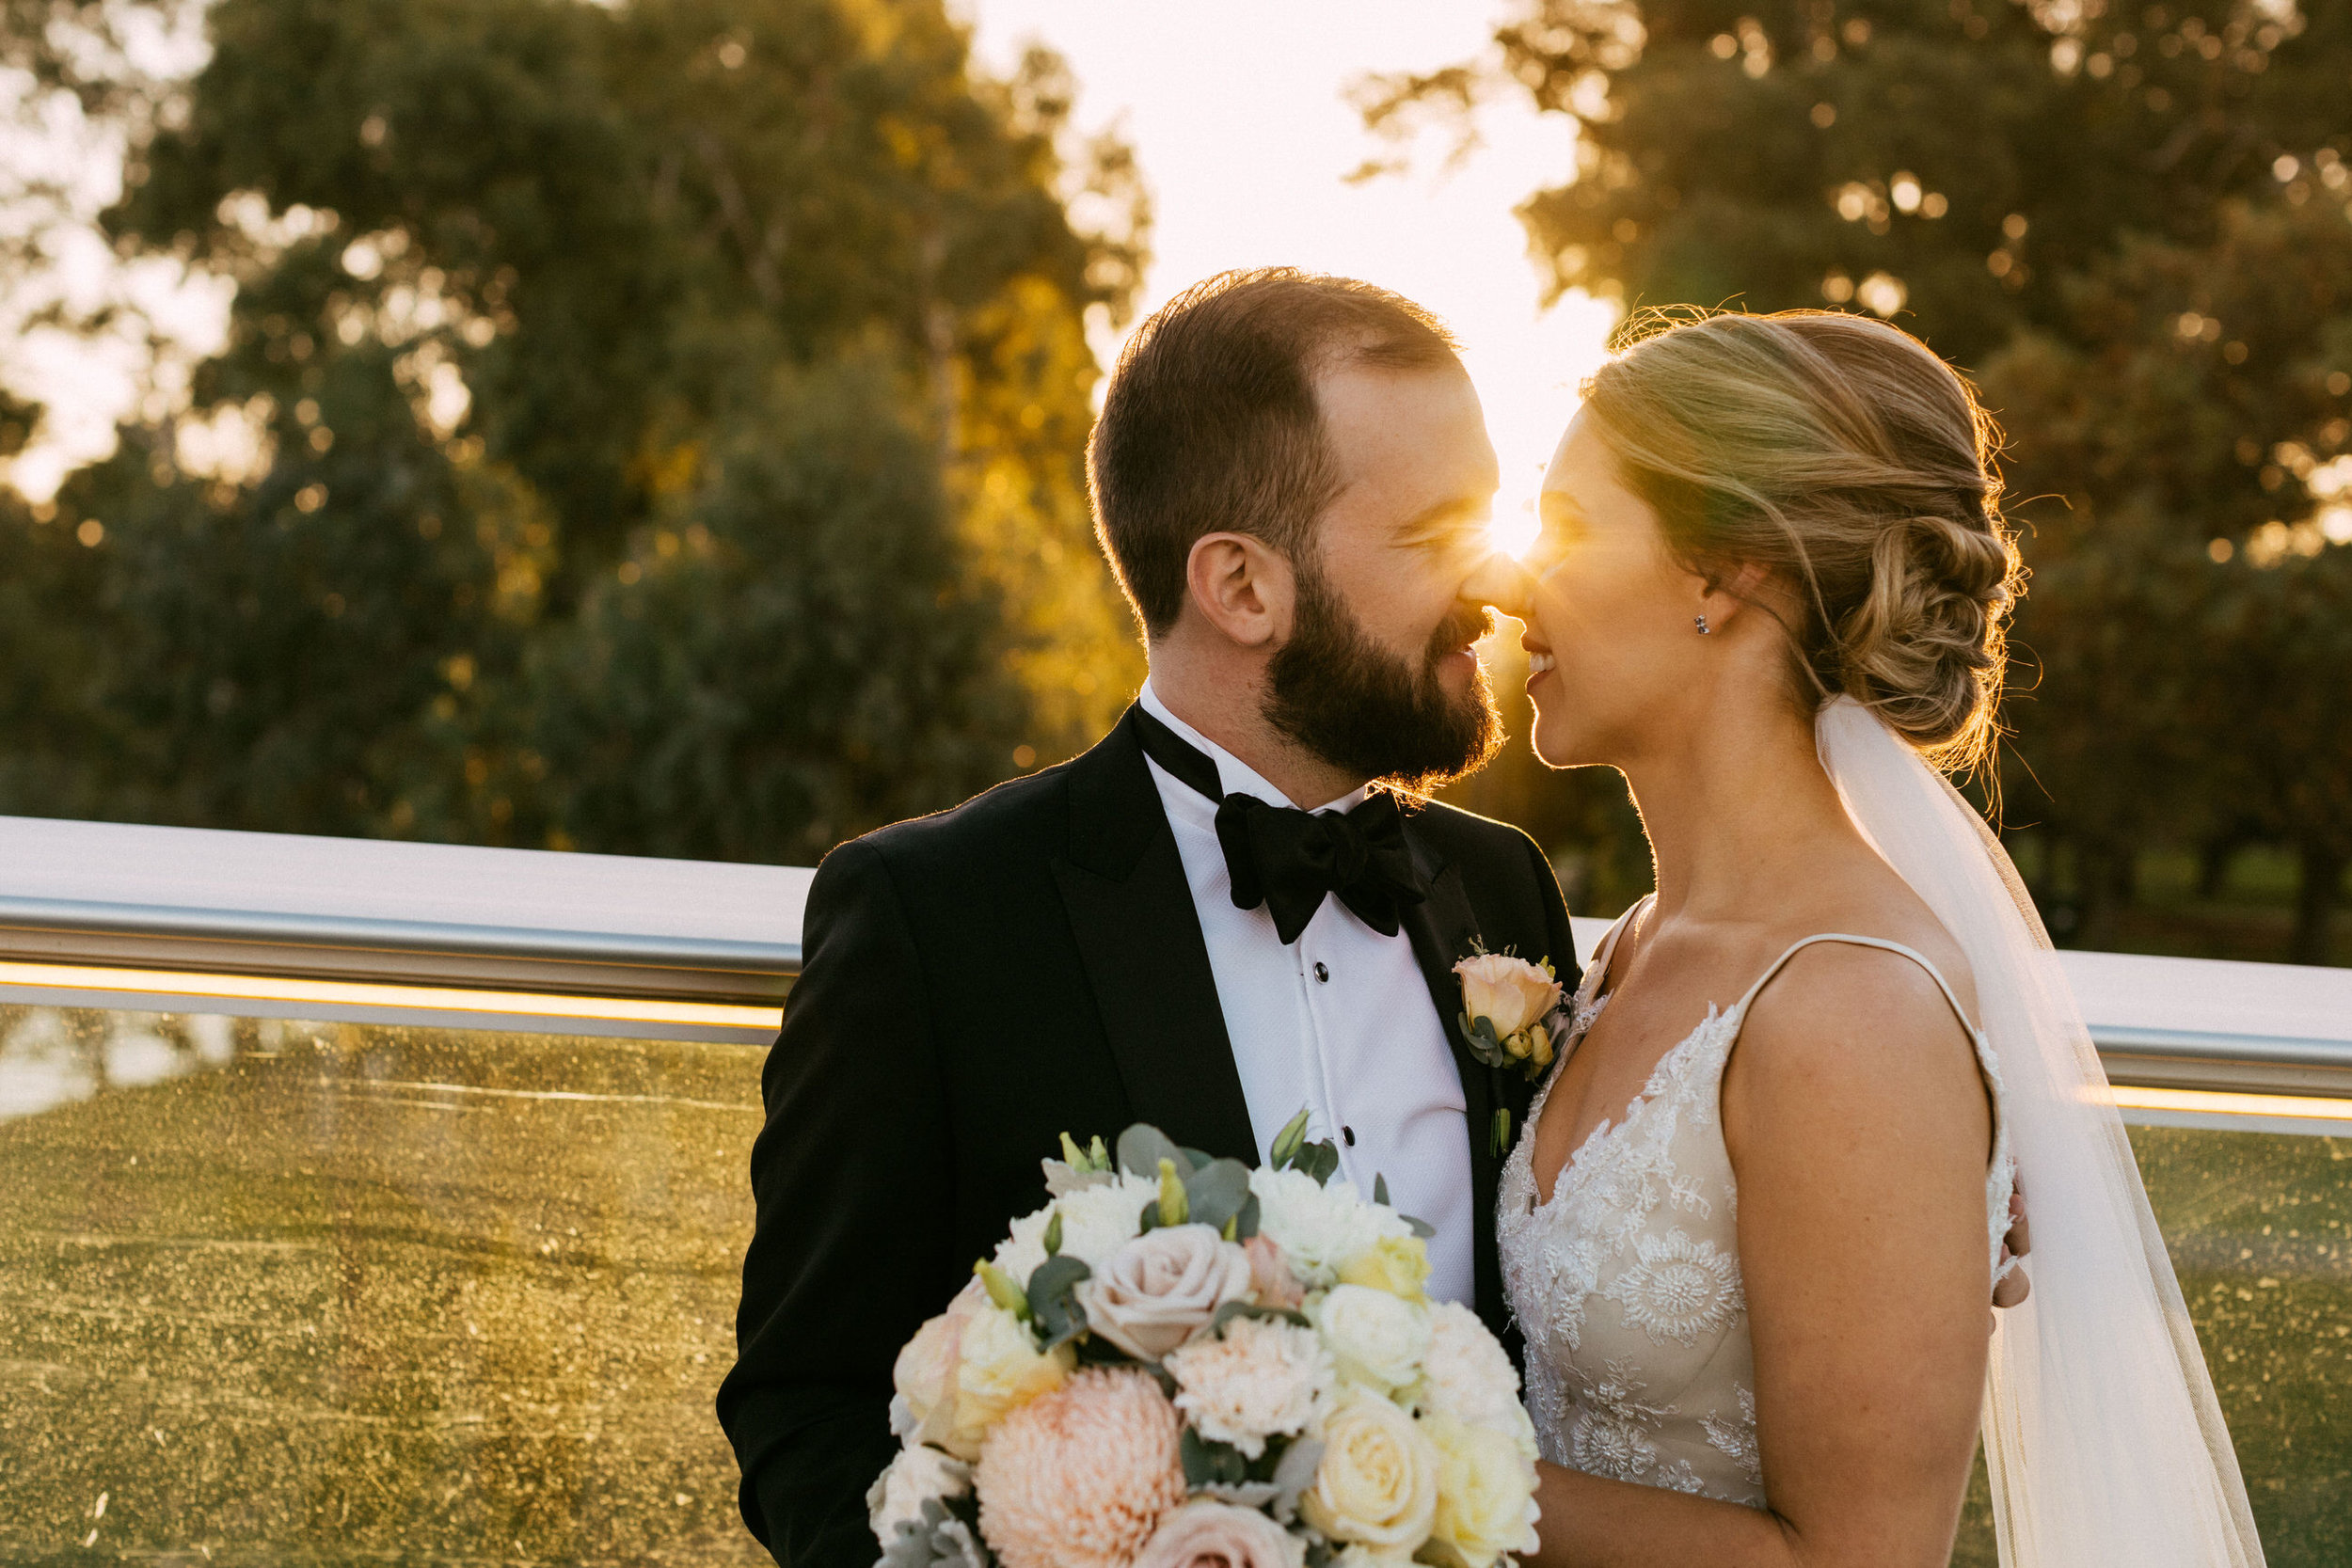 Adelaide Wedding 2019 116.jpg